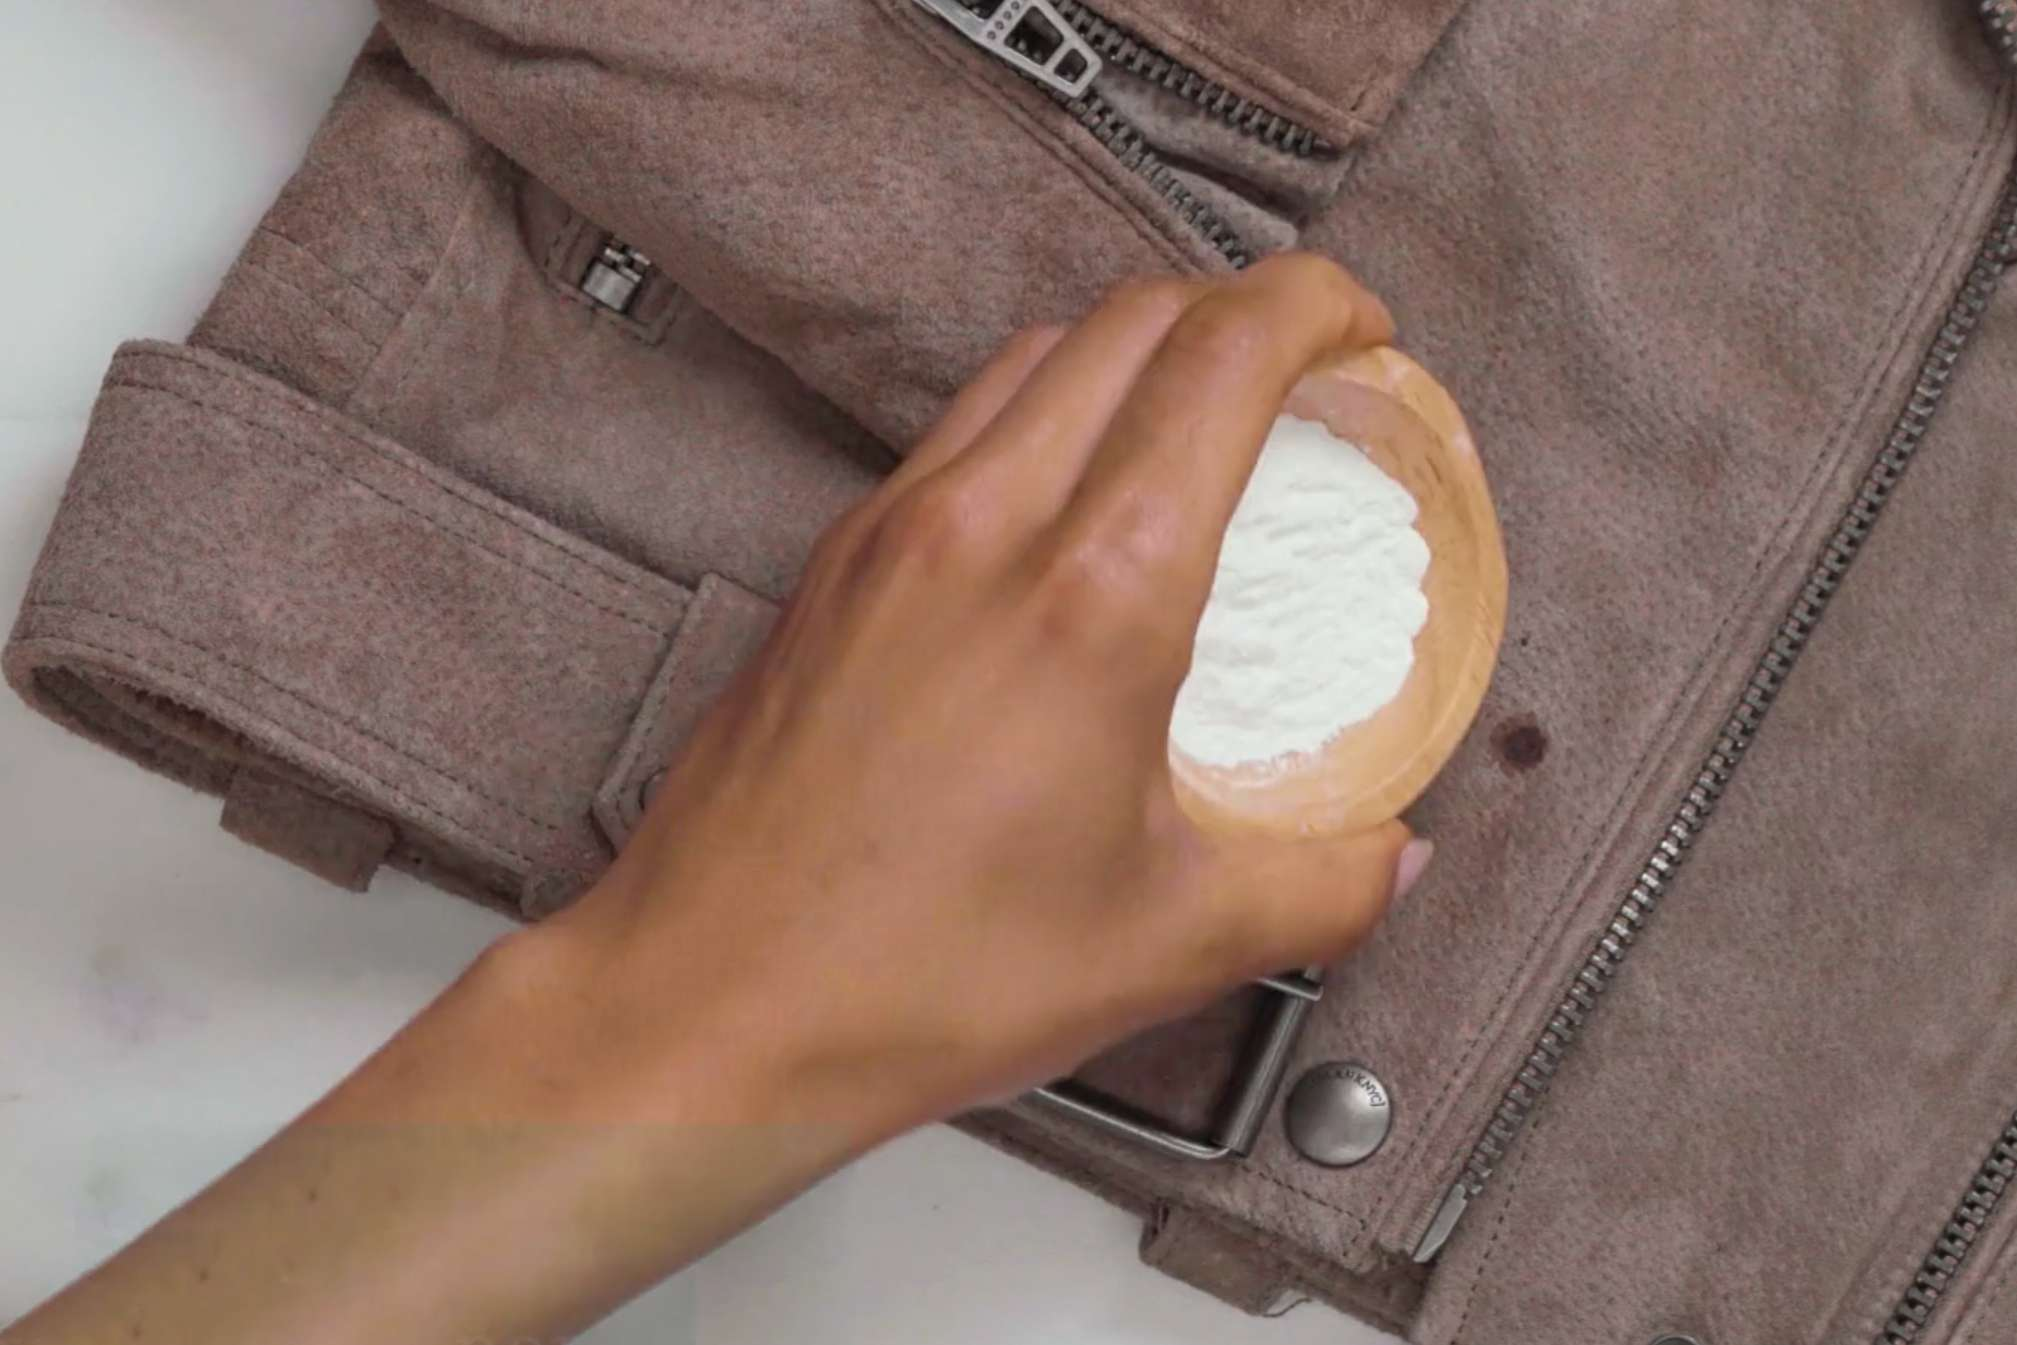 Using baby powder on the stain